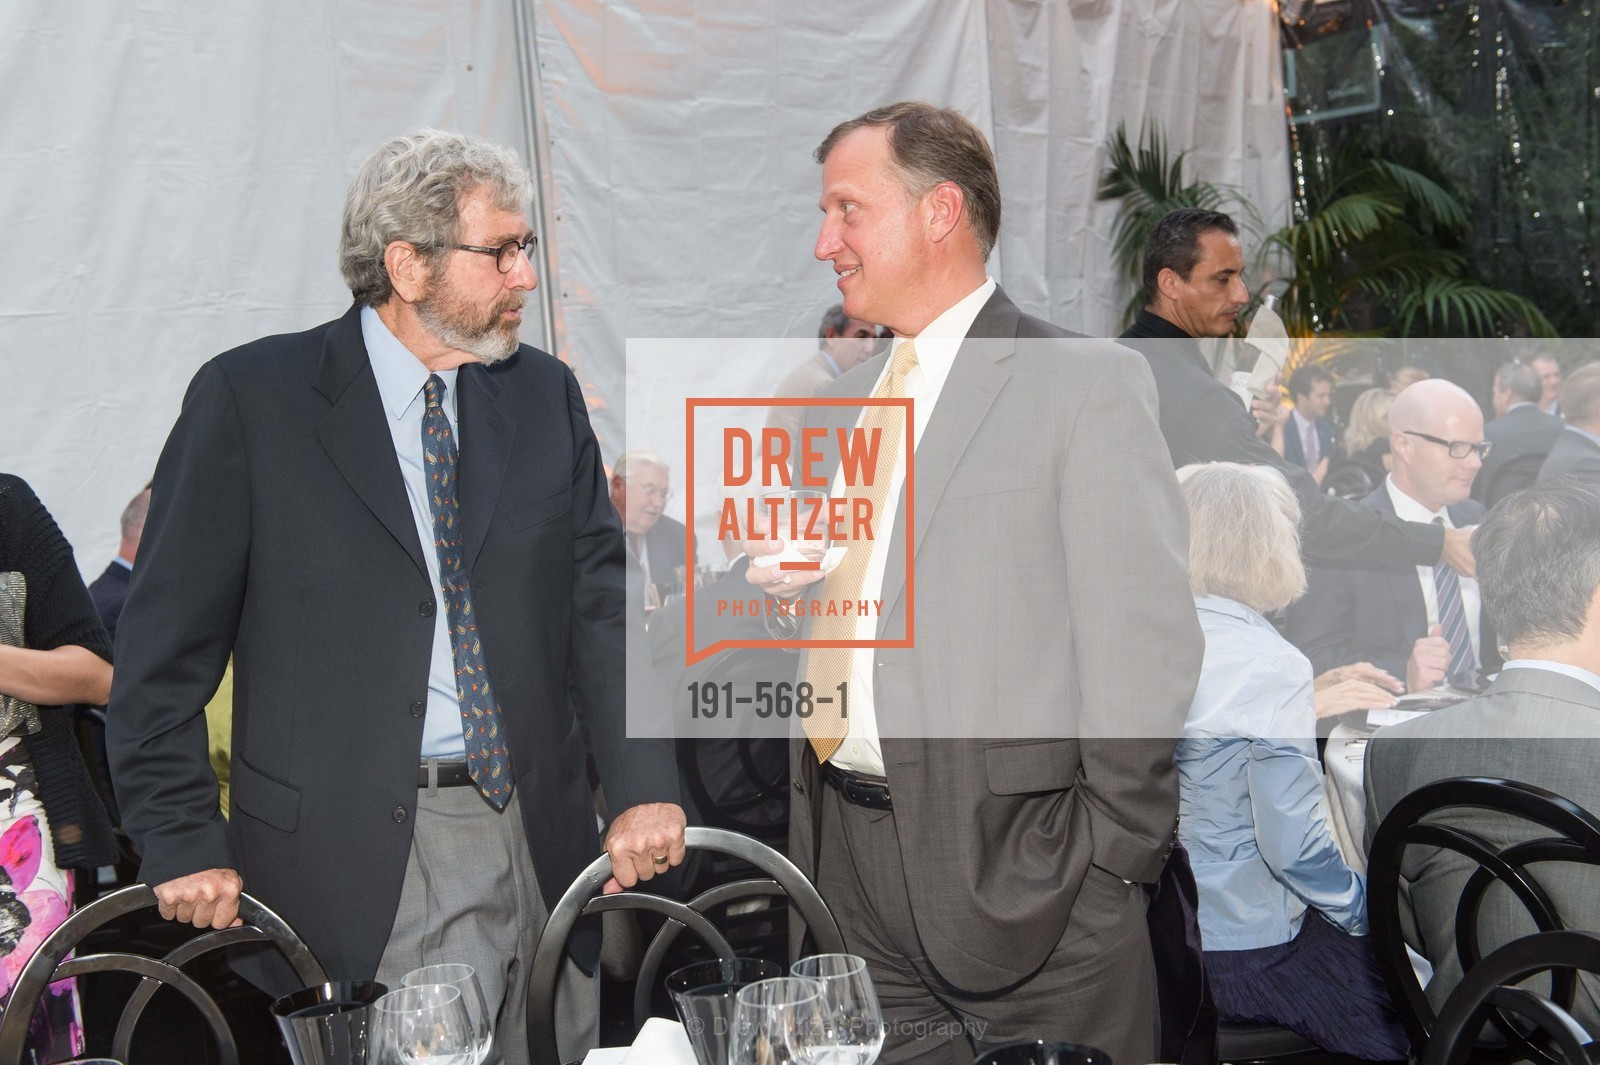 Richard Grant, Robert Kret, SOTHEBY'S  Hosts a Private Viewing of Highlights from the Collection of MRS. PAUL MELLON, US, September 17th, 2014,Drew Altizer, Drew Altizer Photography, full-service agency, private events, San Francisco photographer, photographer california